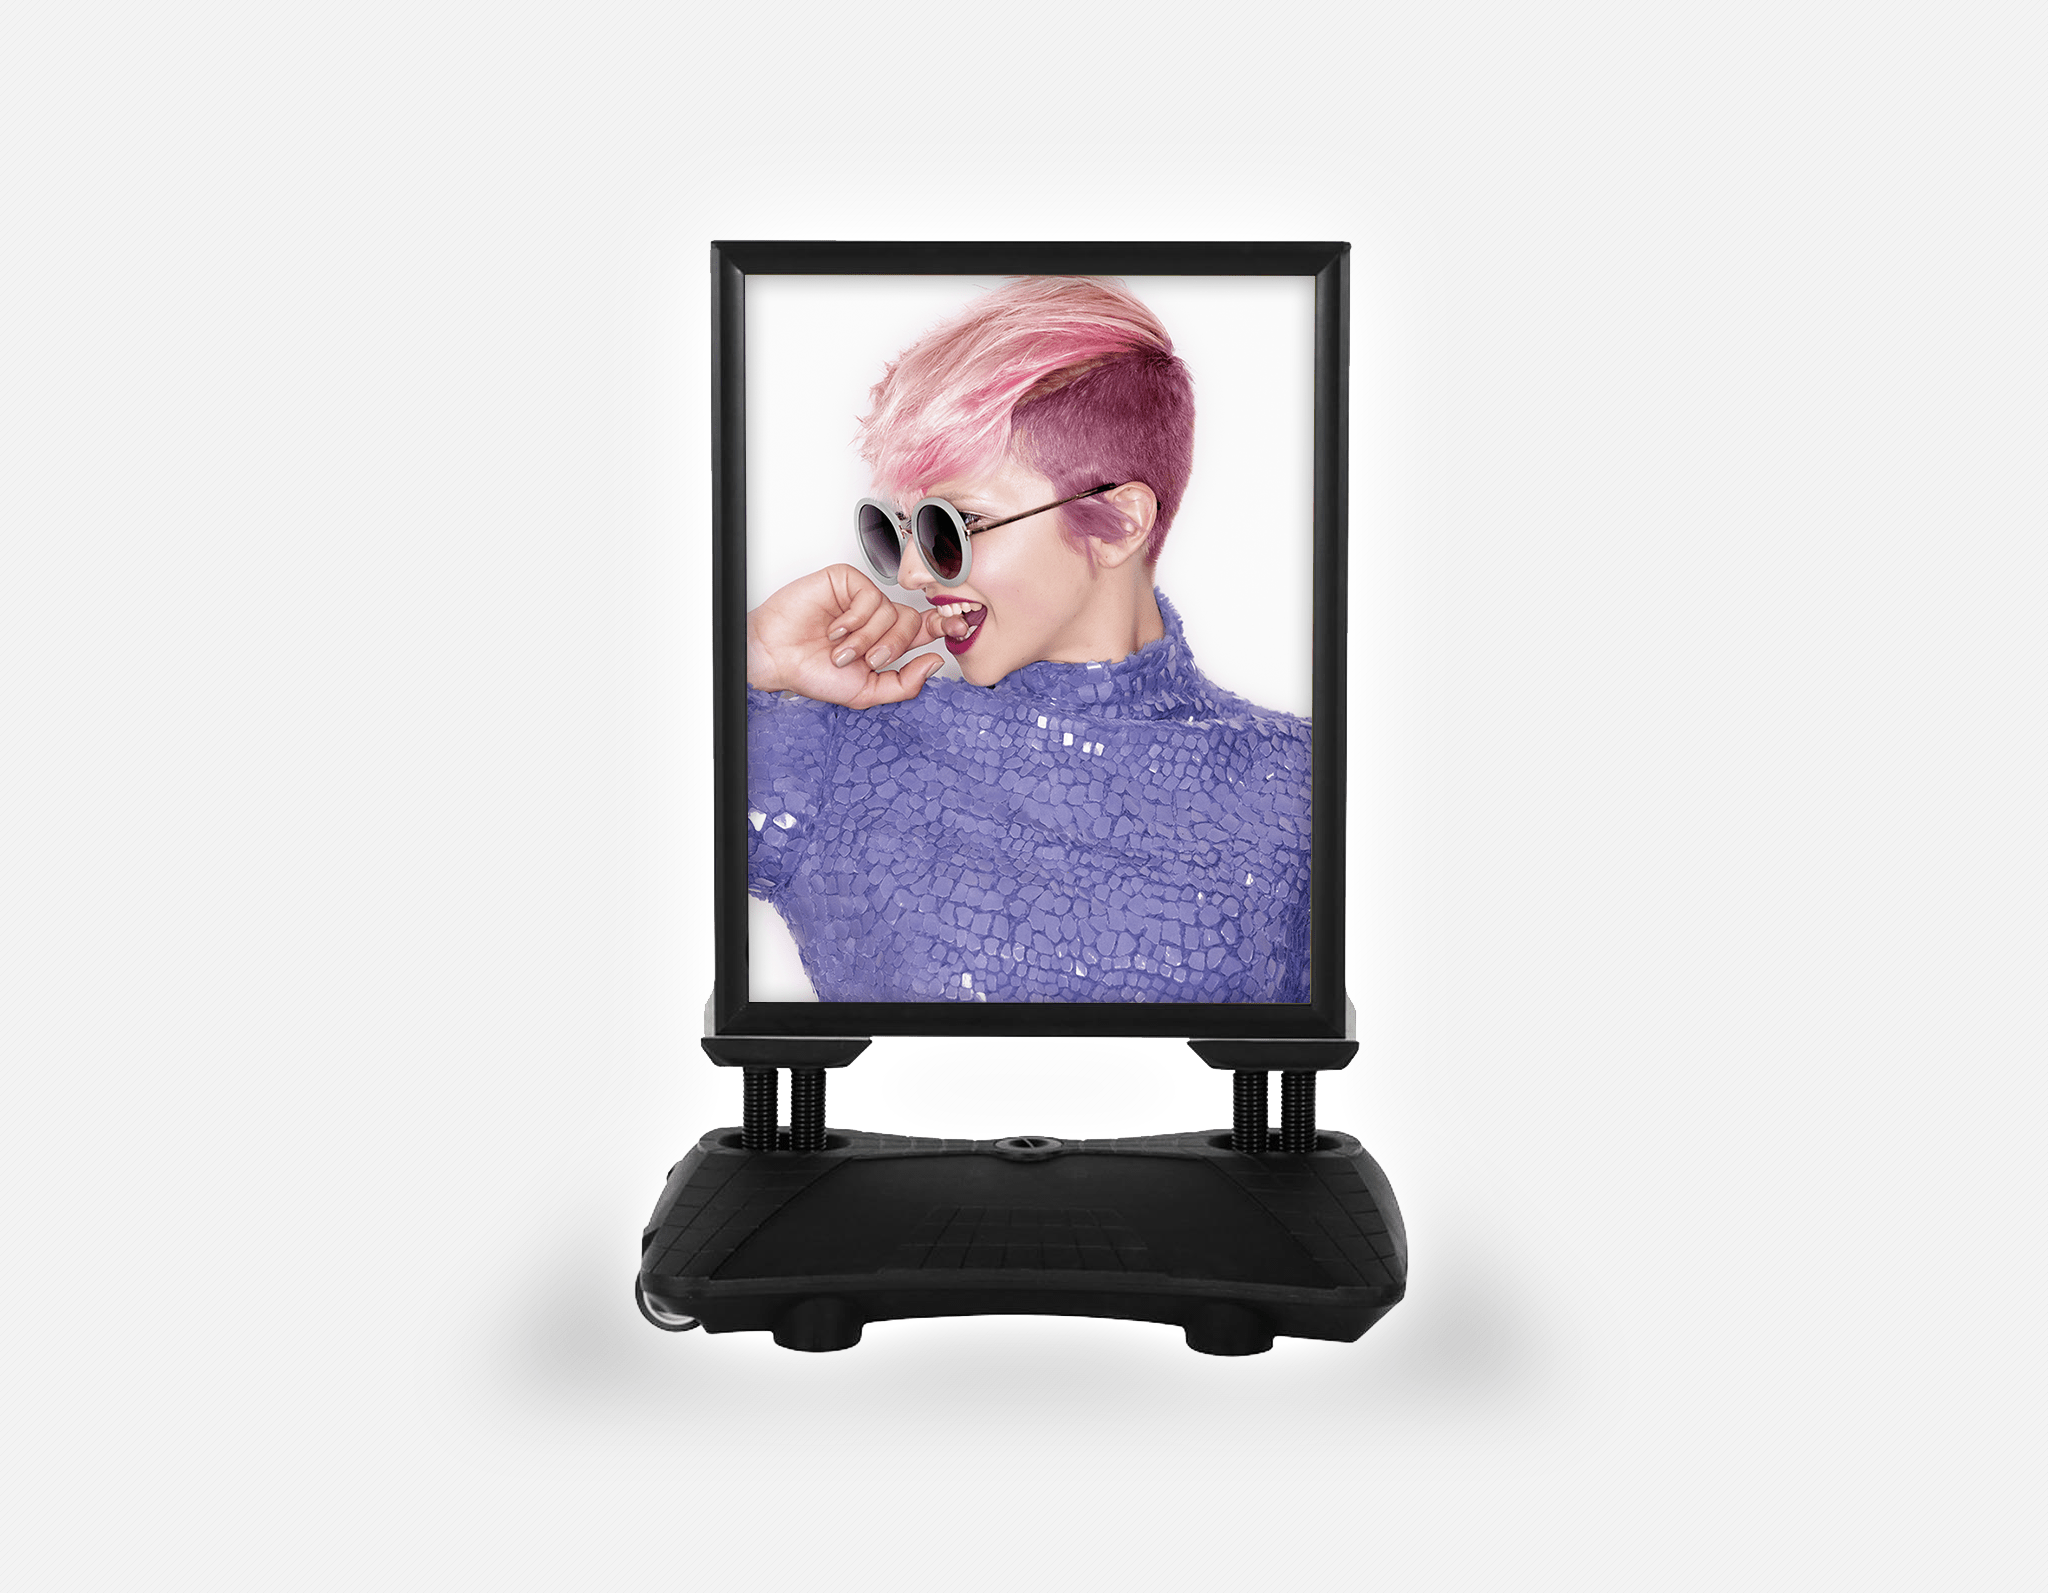 Water Base Pavements Sign: Woman Side in Pink Hair Colored Pixie Cut